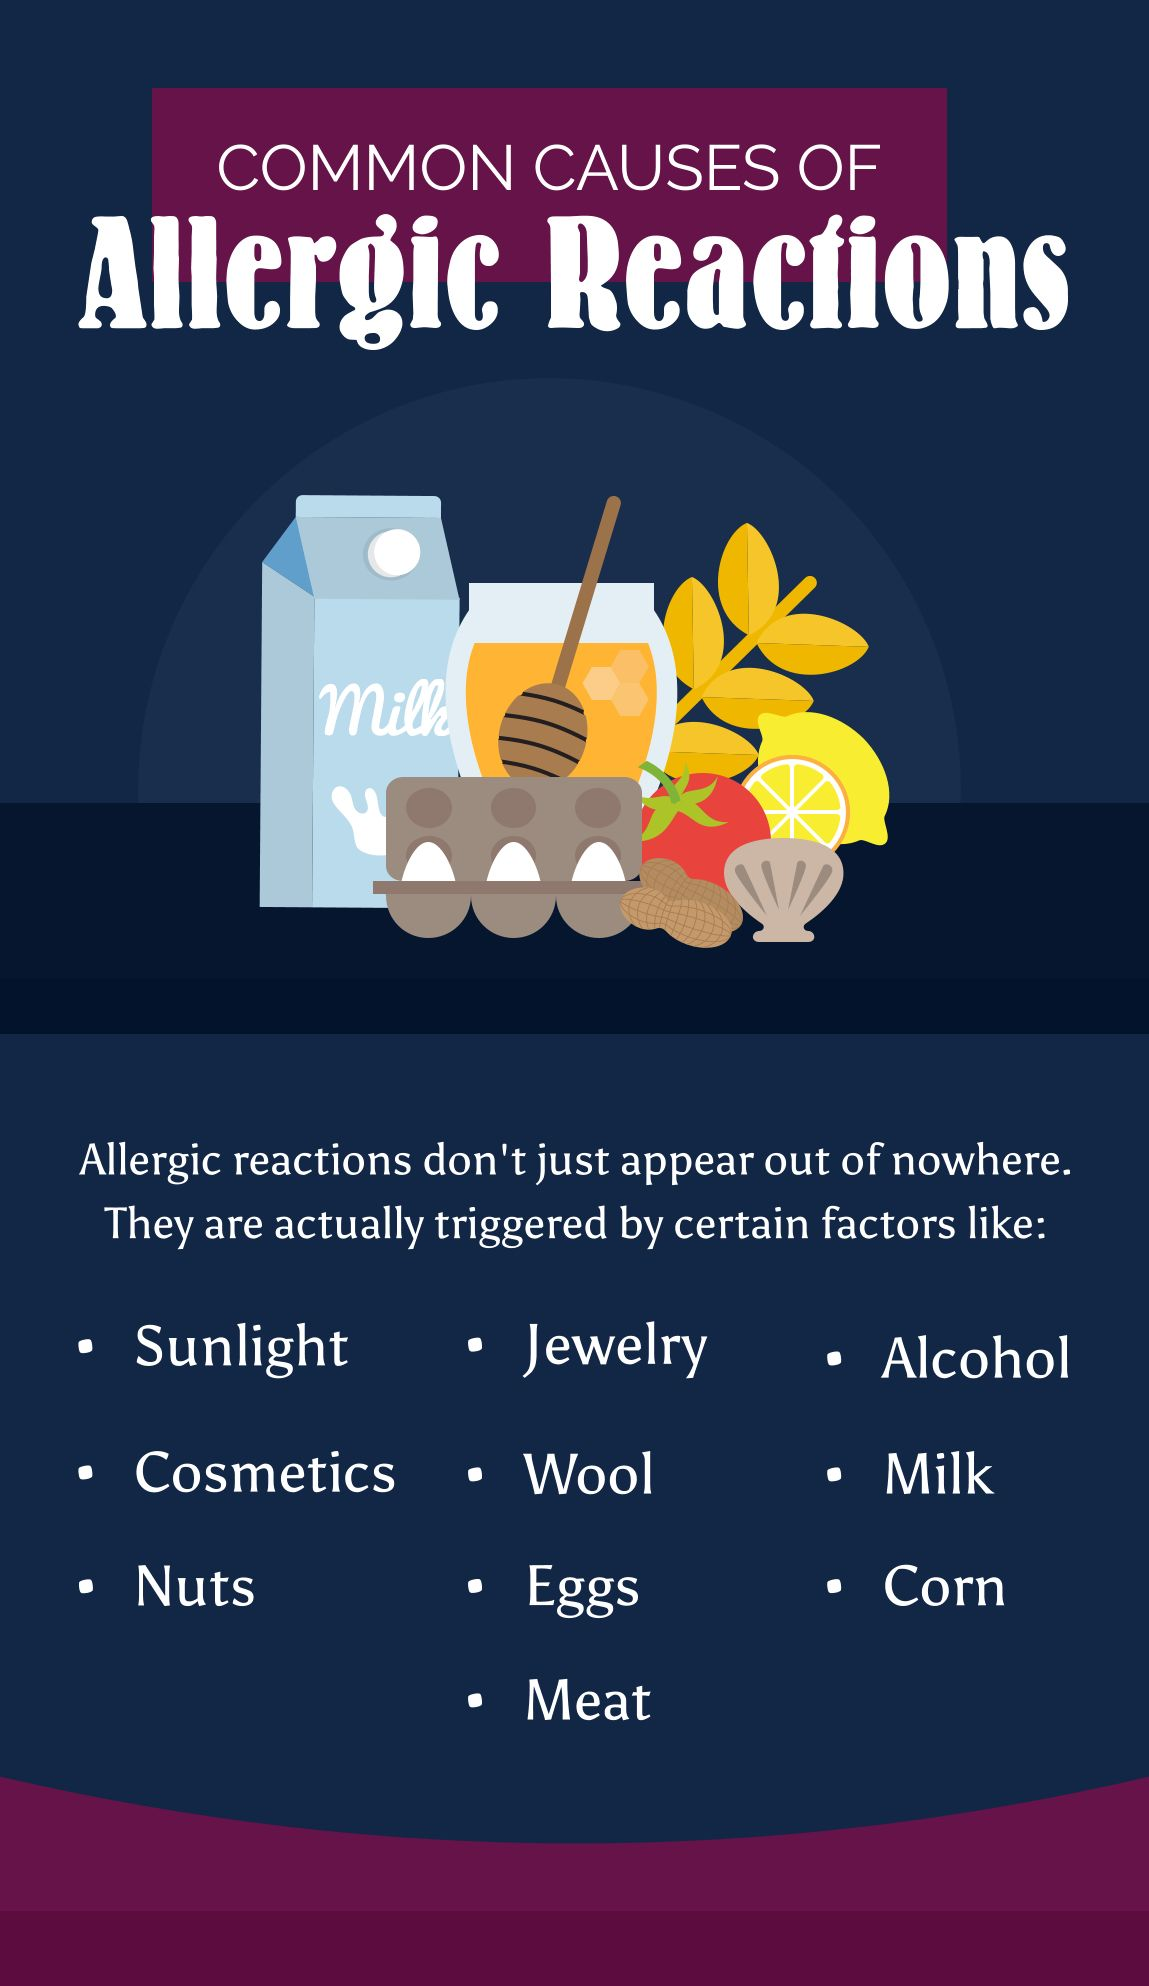 Common causes of allergic reactions allergicreactions